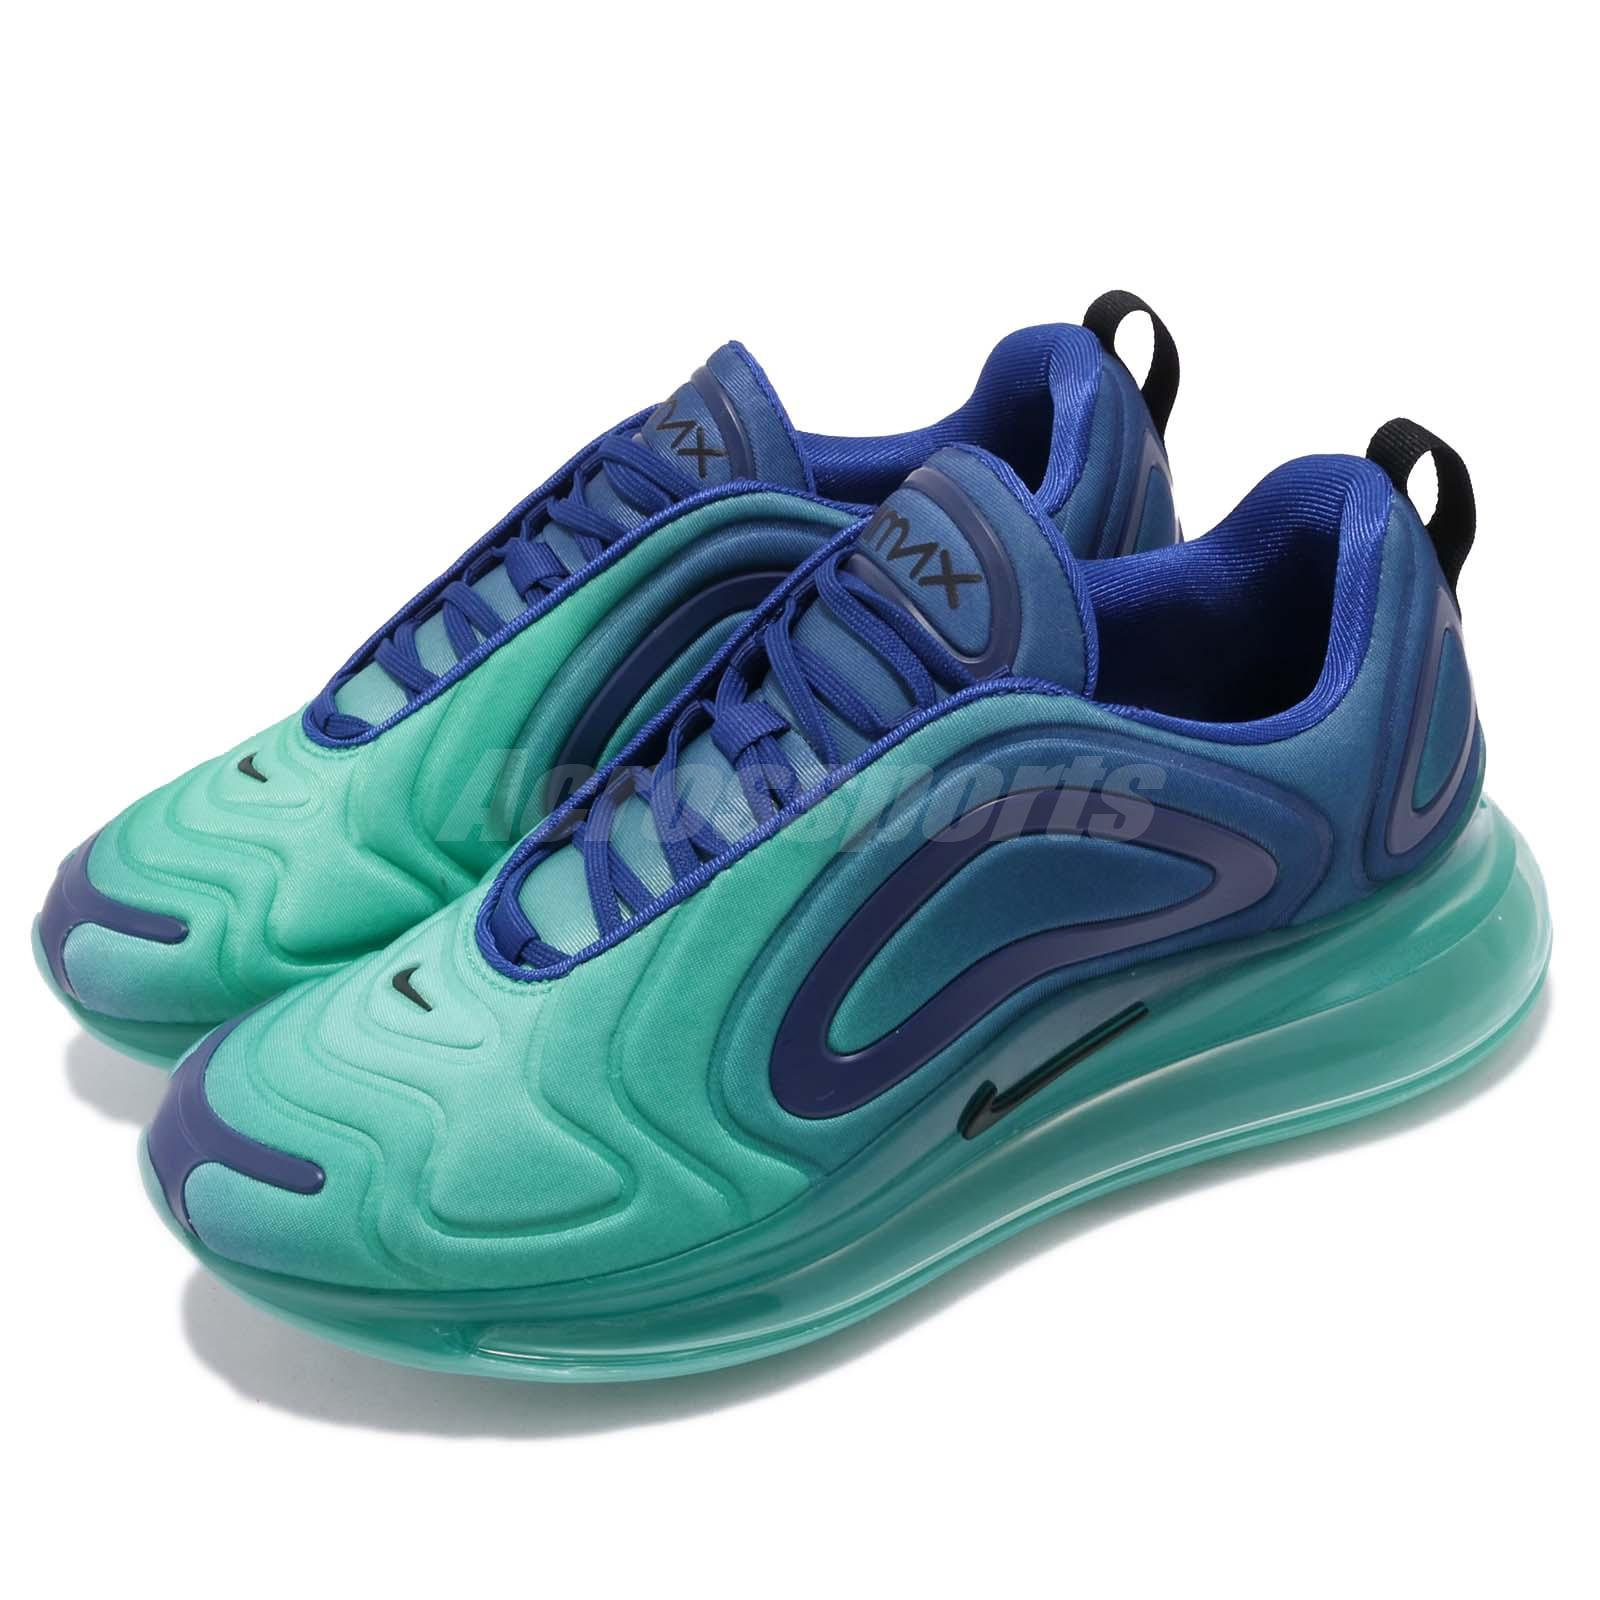 reputable site 2000f 689a9 Details about Nike Air Max 720 Sea Forest Deep Royal Blue Men Running Shoes  Sneaker AO2924-400